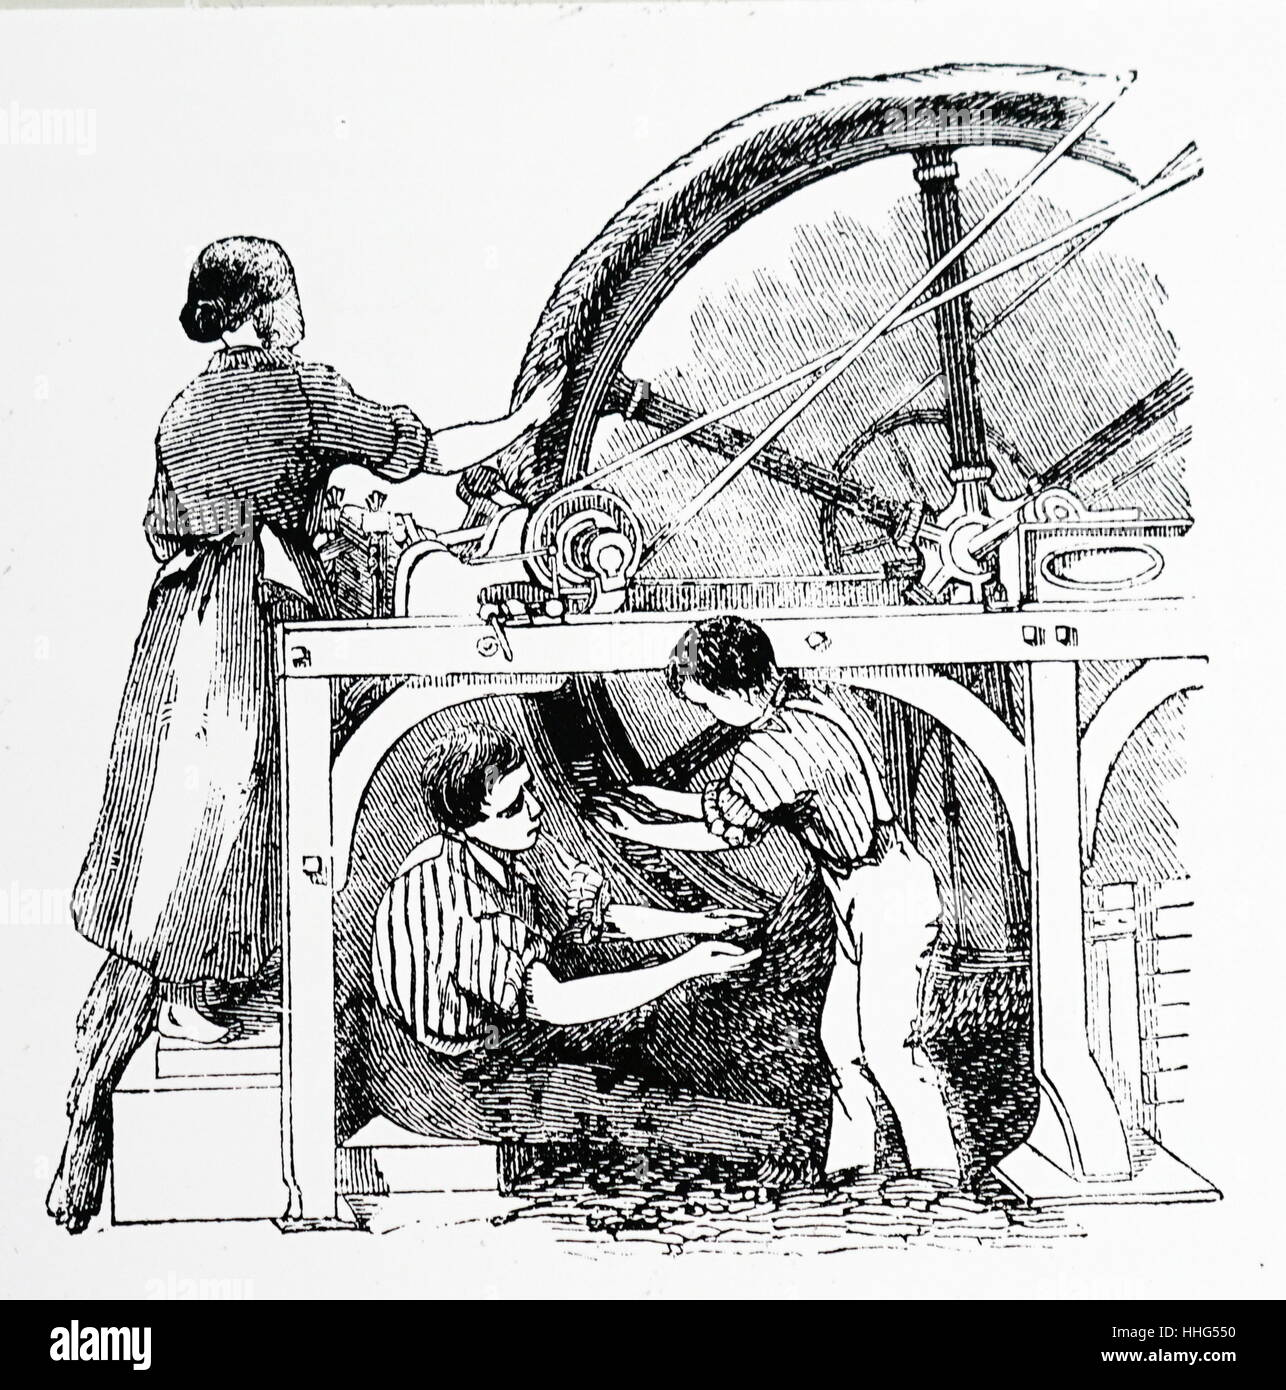 Carpet manufacture, Glasgow: combing wheel which brought the fibres parallel to each other ready for spinning, London, Stock Photo